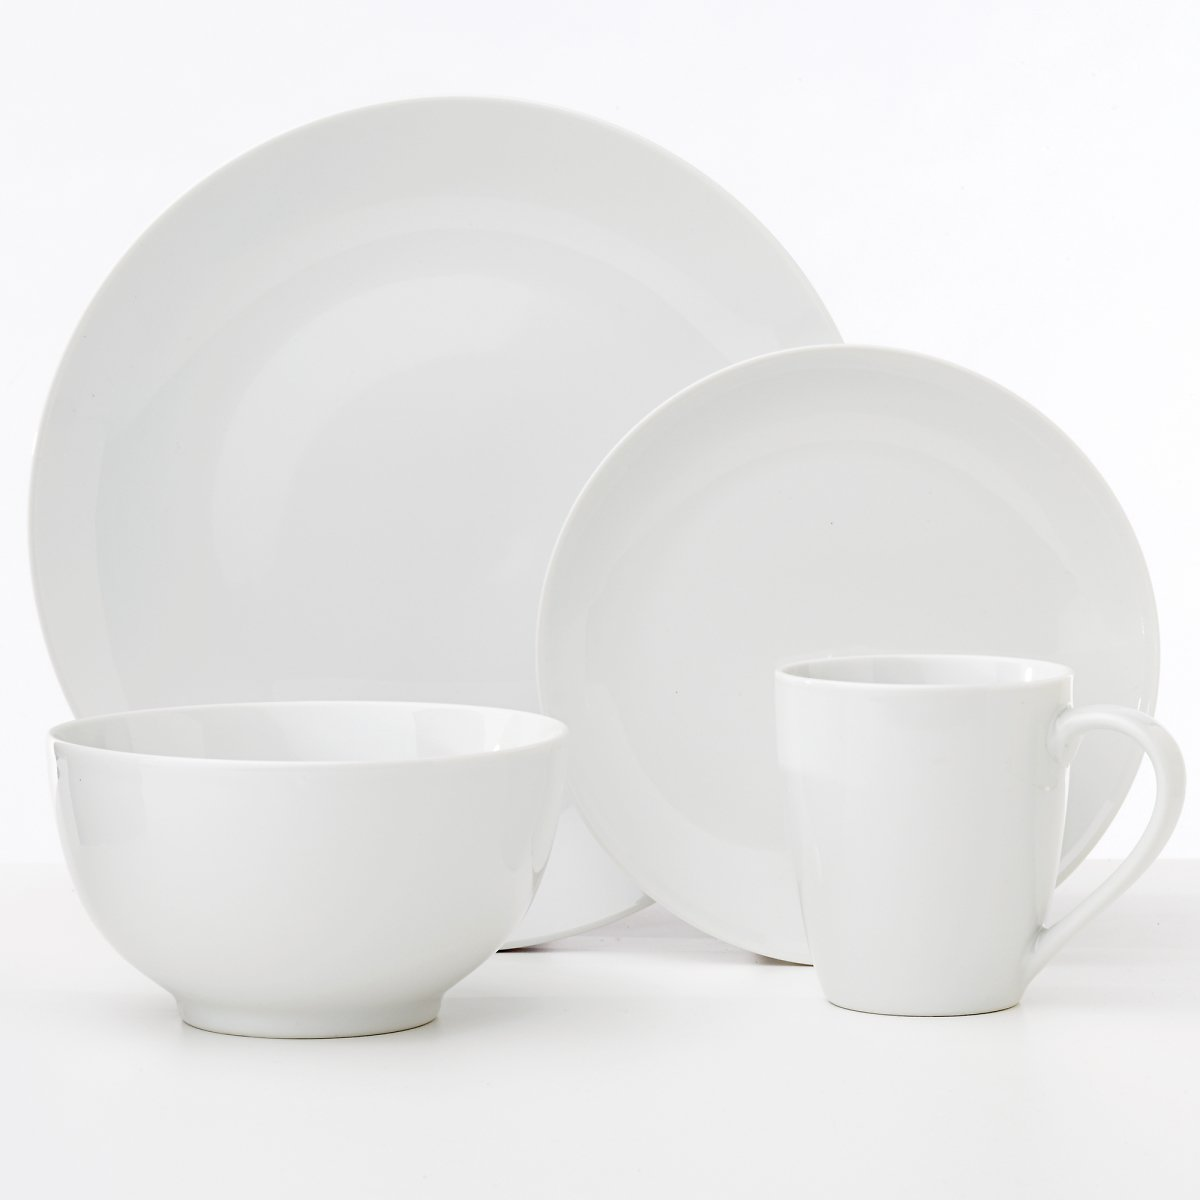 Safdie & Co. 16-Piece Coupe Classic Oxford Dinnerware Set, White